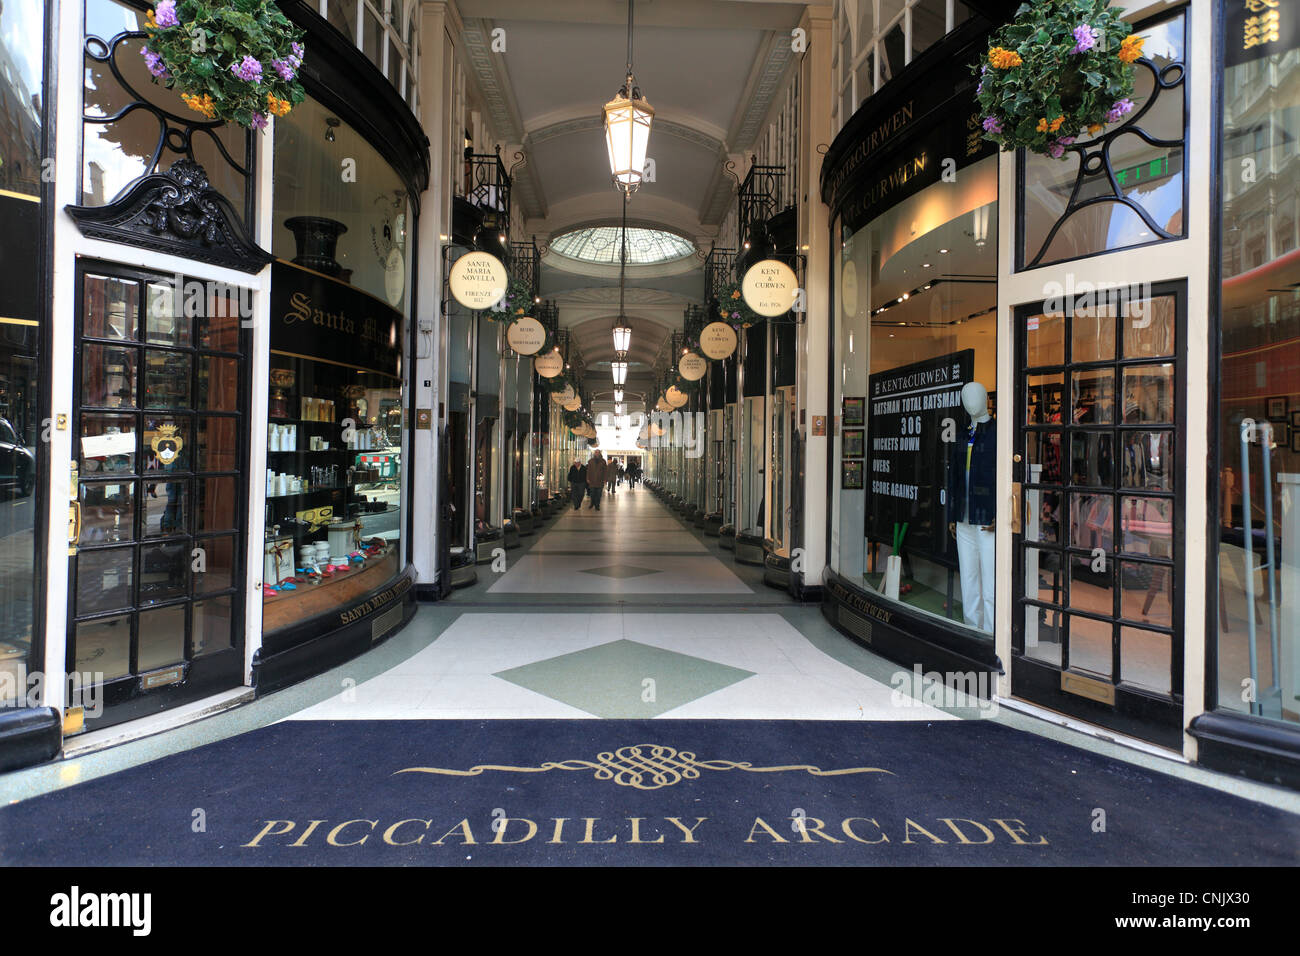 The Piccadilly Arcade Mayfair London - Stock Image